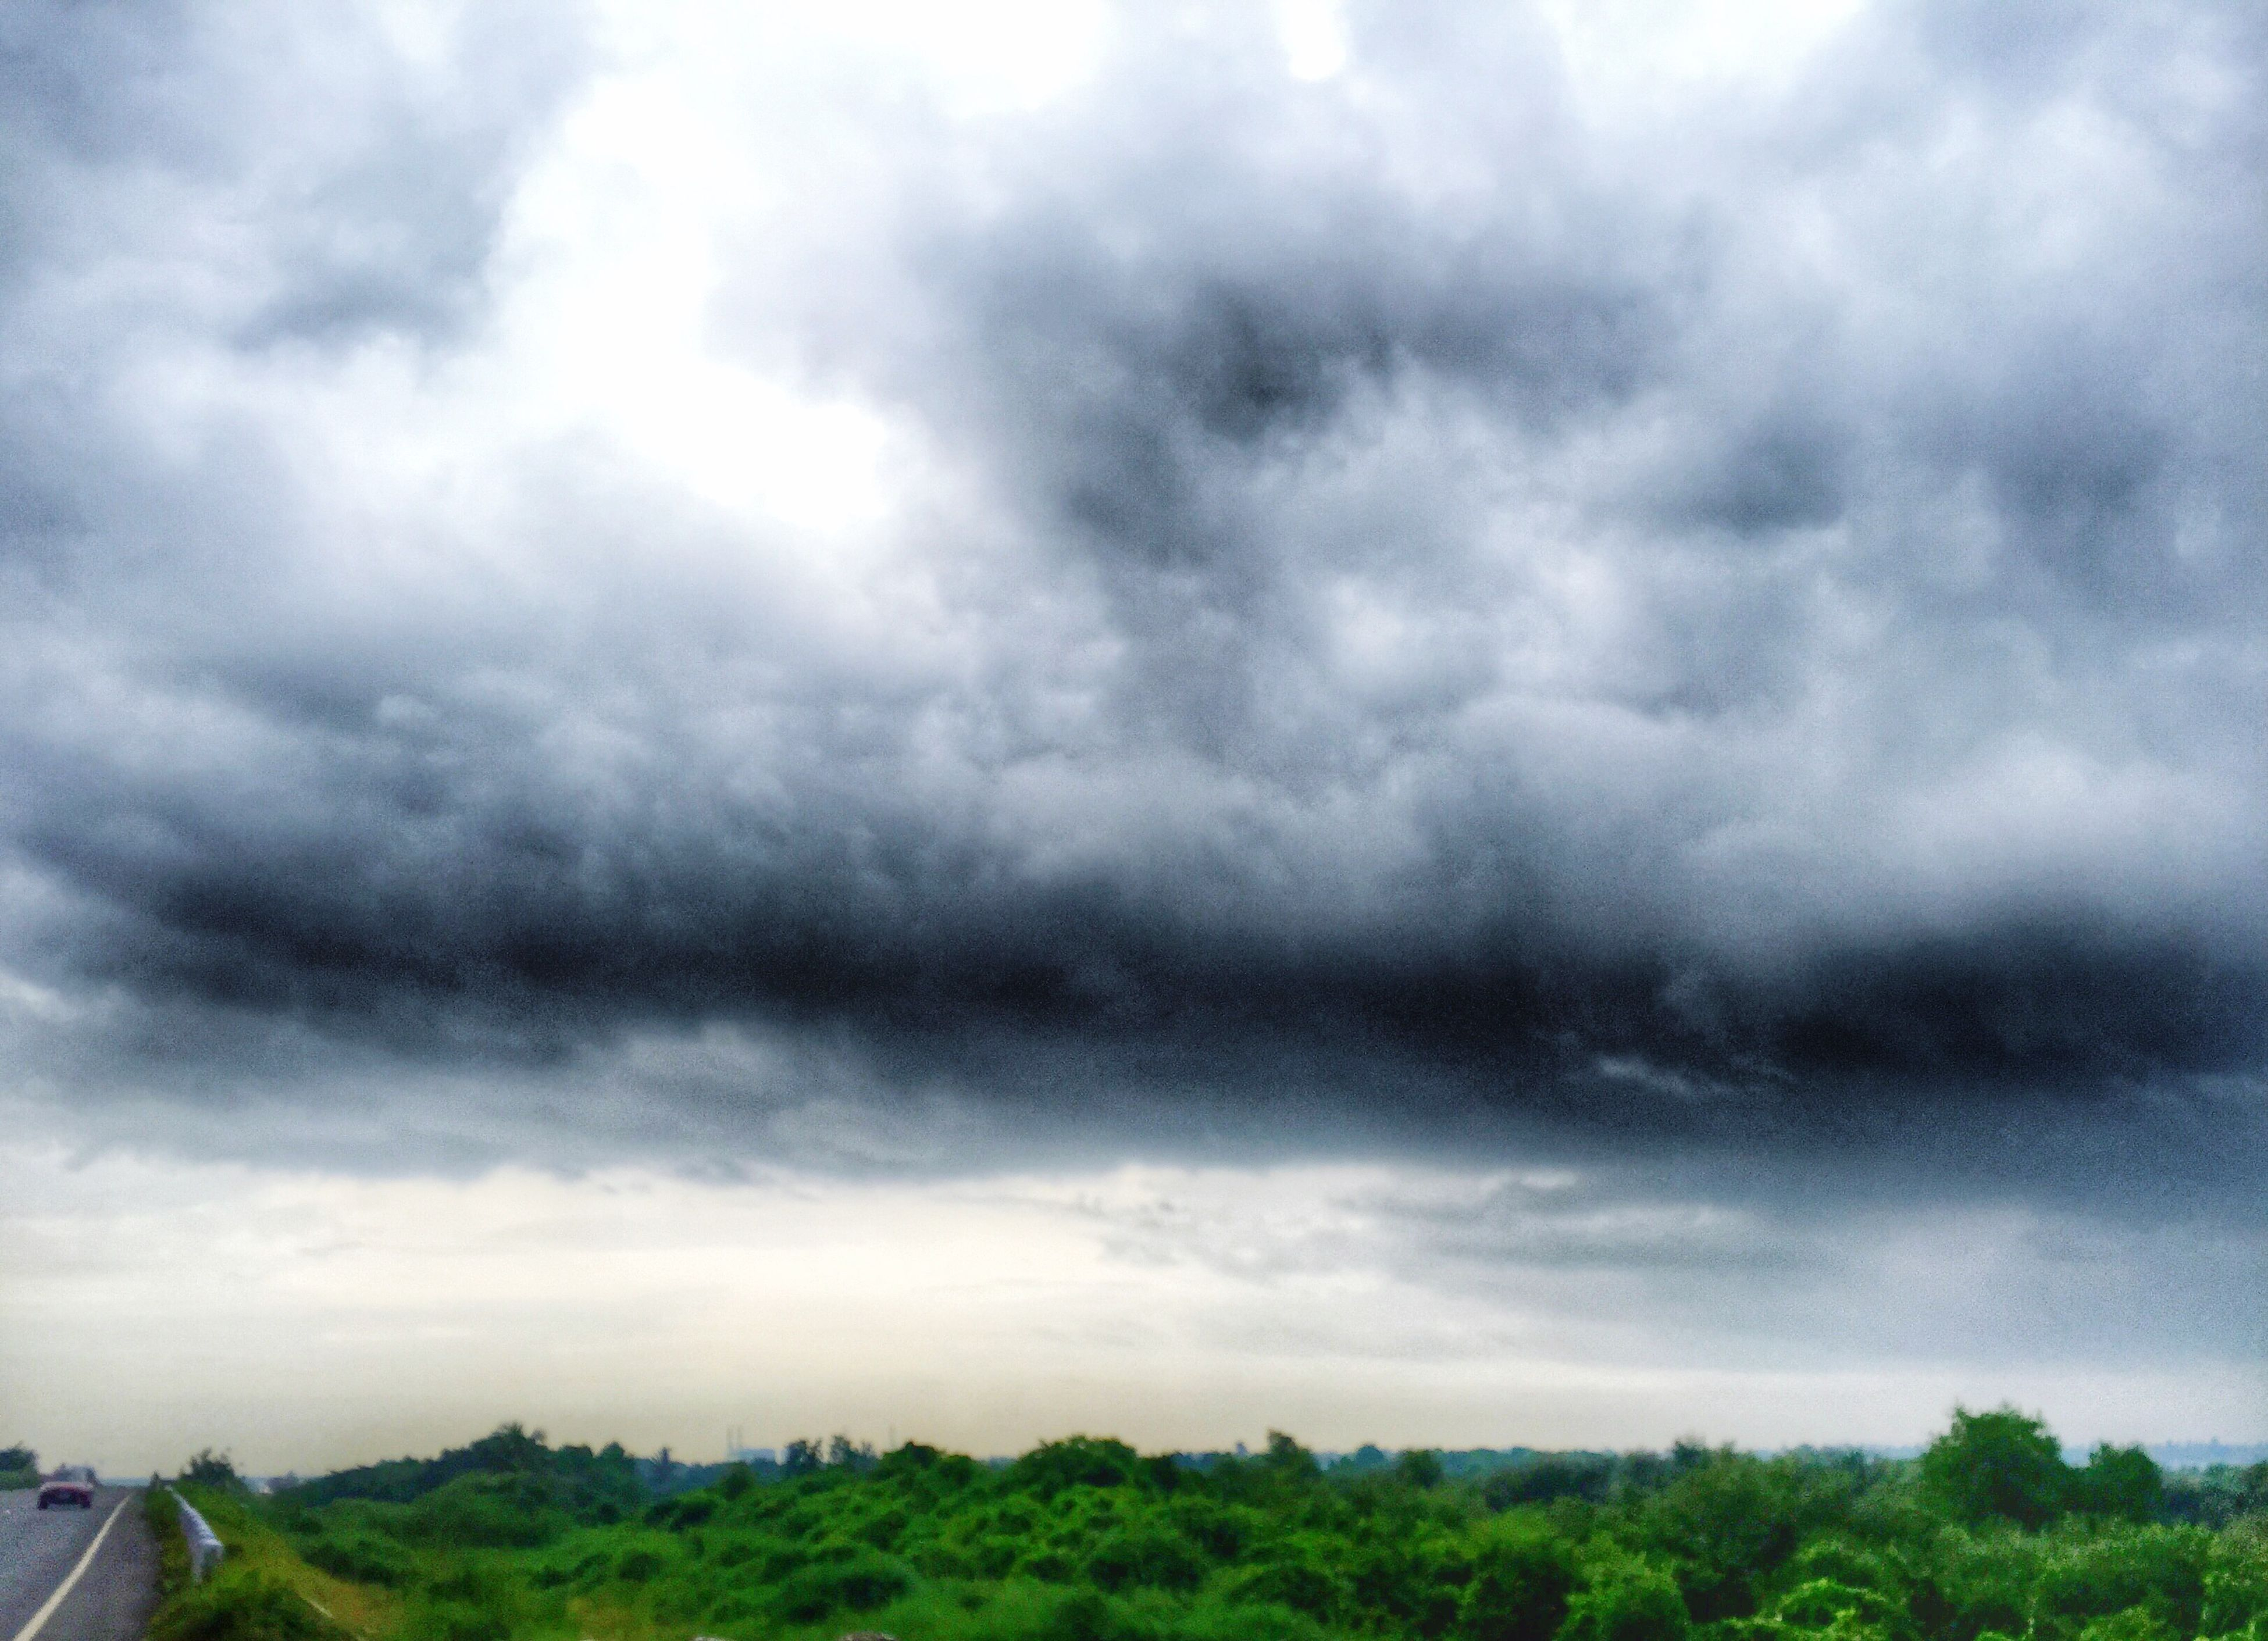 sky, cloud - sky, cloudy, tranquil scene, landscape, tranquility, scenics, beauty in nature, nature, cloud, field, grass, weather, overcast, tree, day, growth, idyllic, non-urban scene, cloudscape